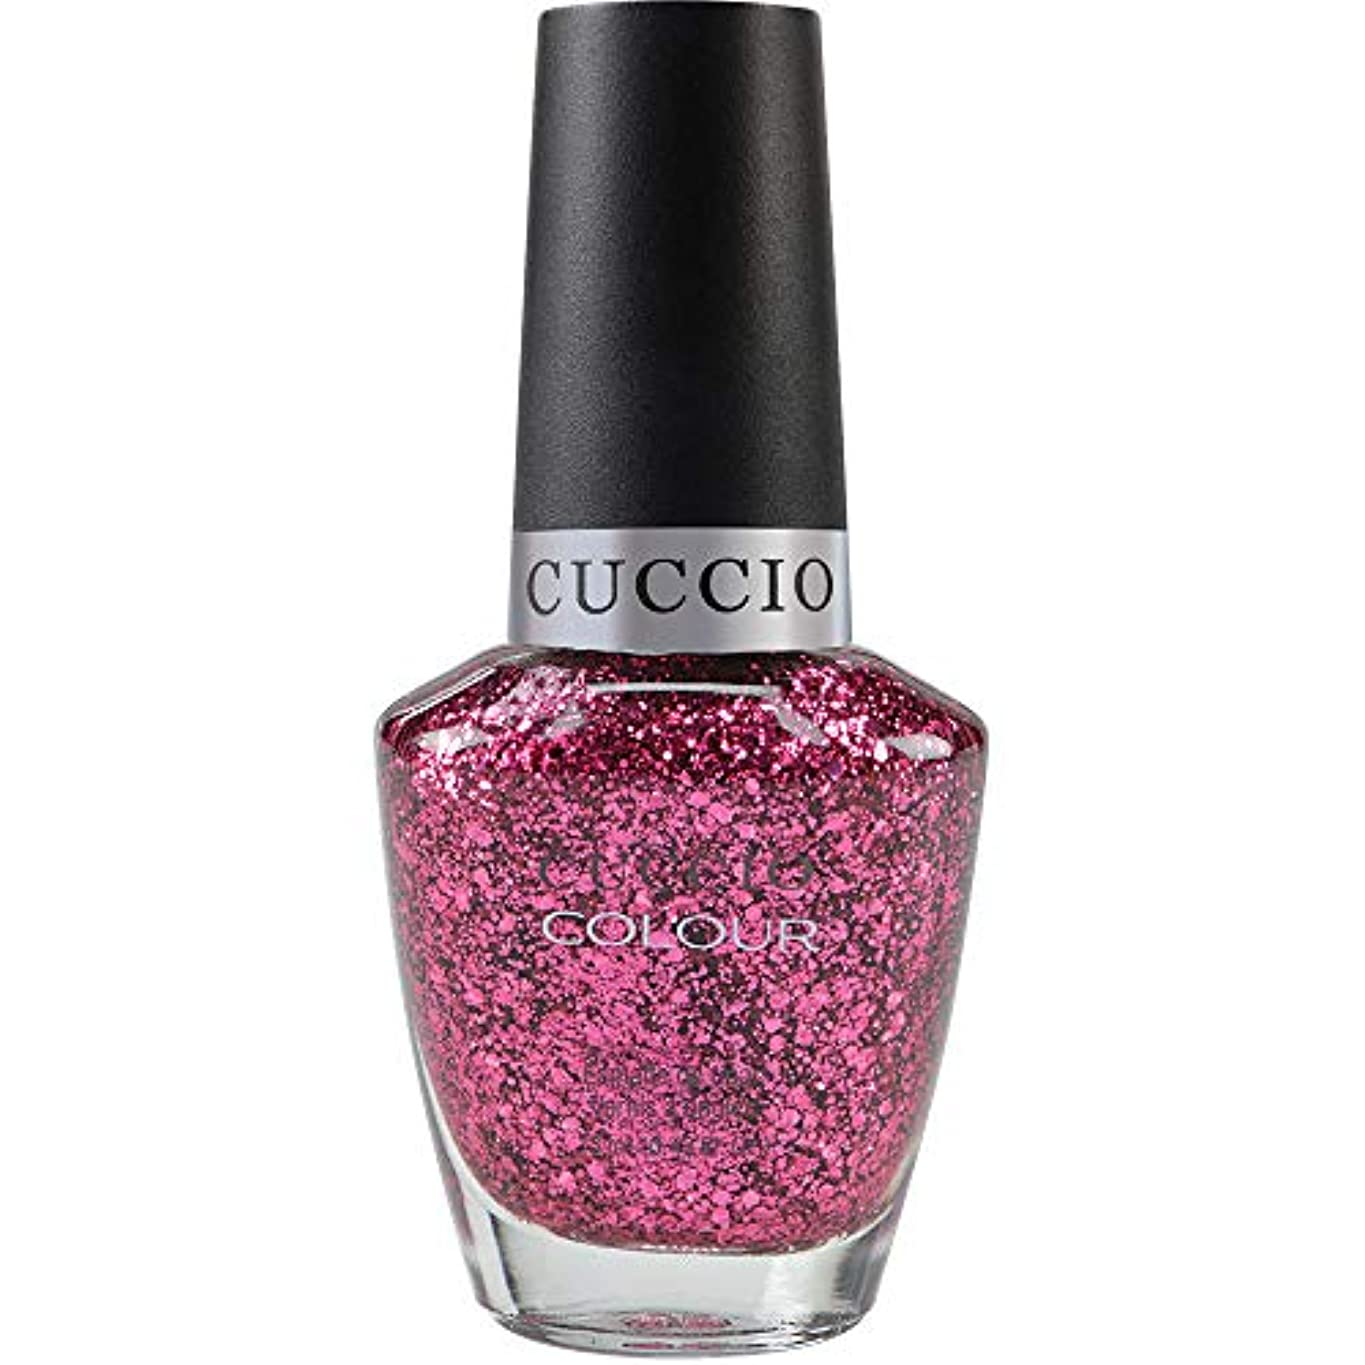 Cuccio Colour Gloss Lacquer - Love Potion NO. 9 - 0.43oz / 13ml